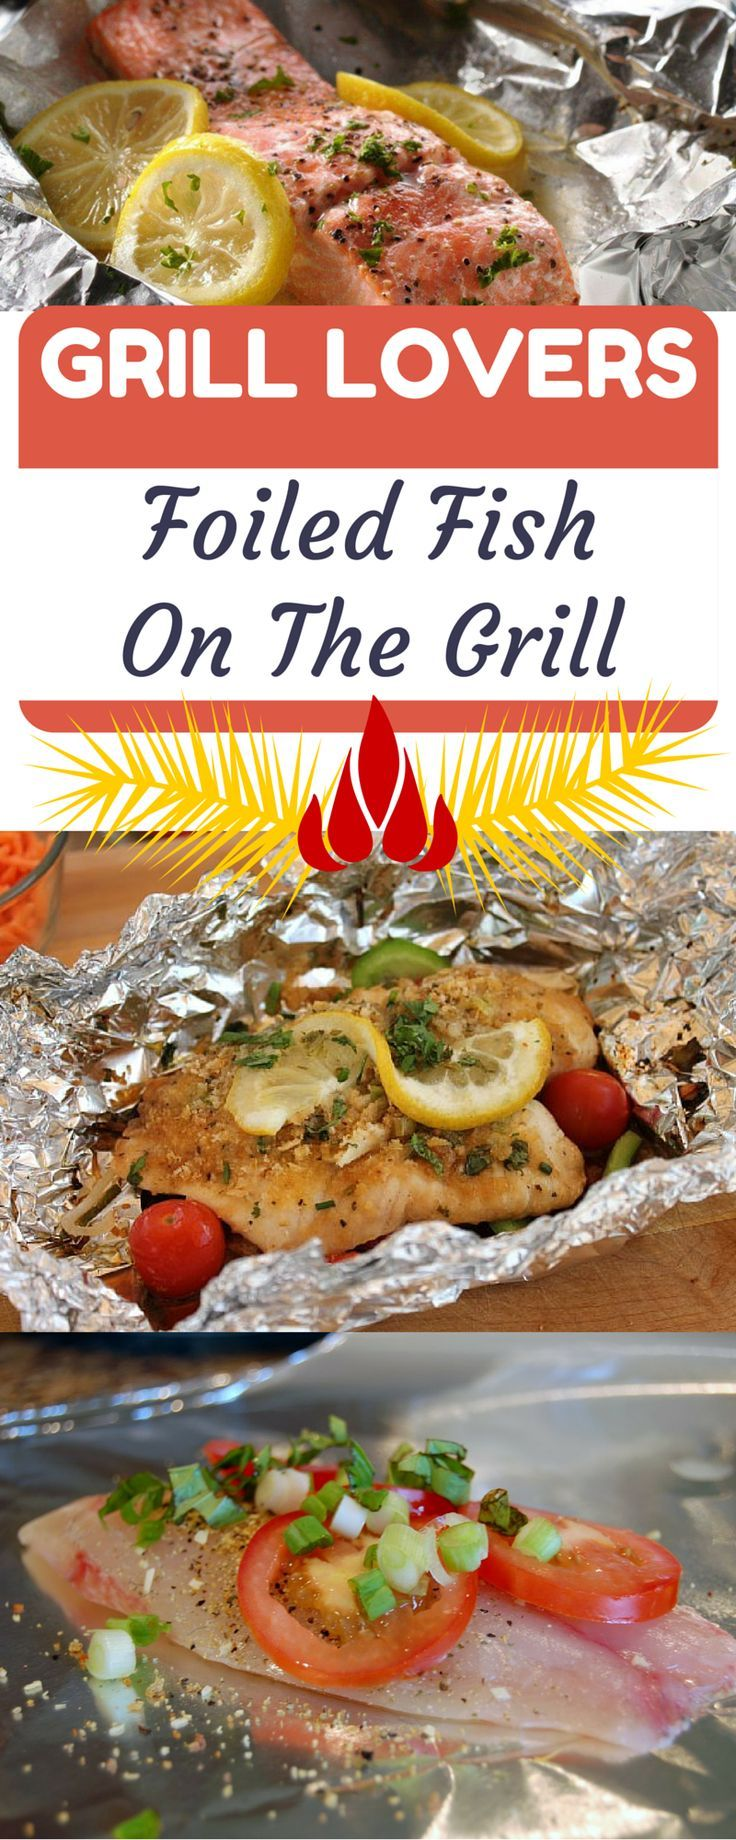 Cook fish on the grill with this recipe. A great summer meal. Now that's healthy eating at it's best!